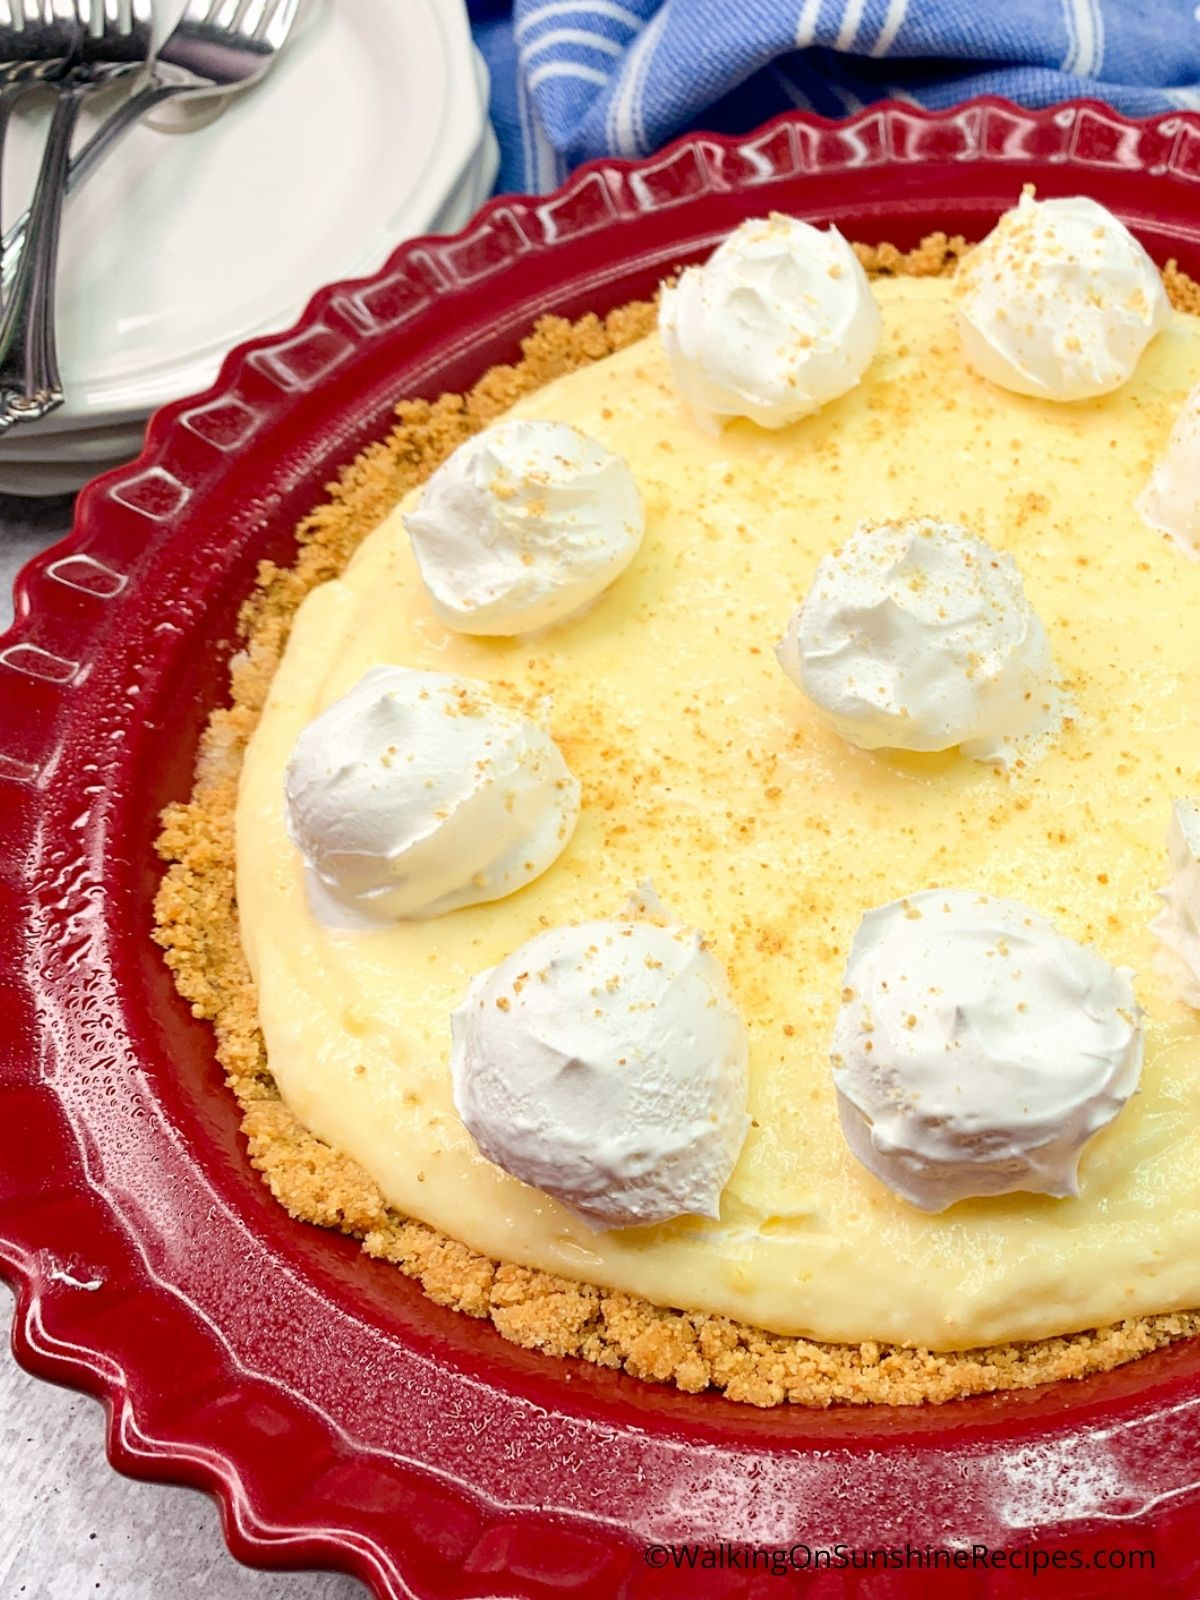 Add whipped cream or Cool Whipped topping.